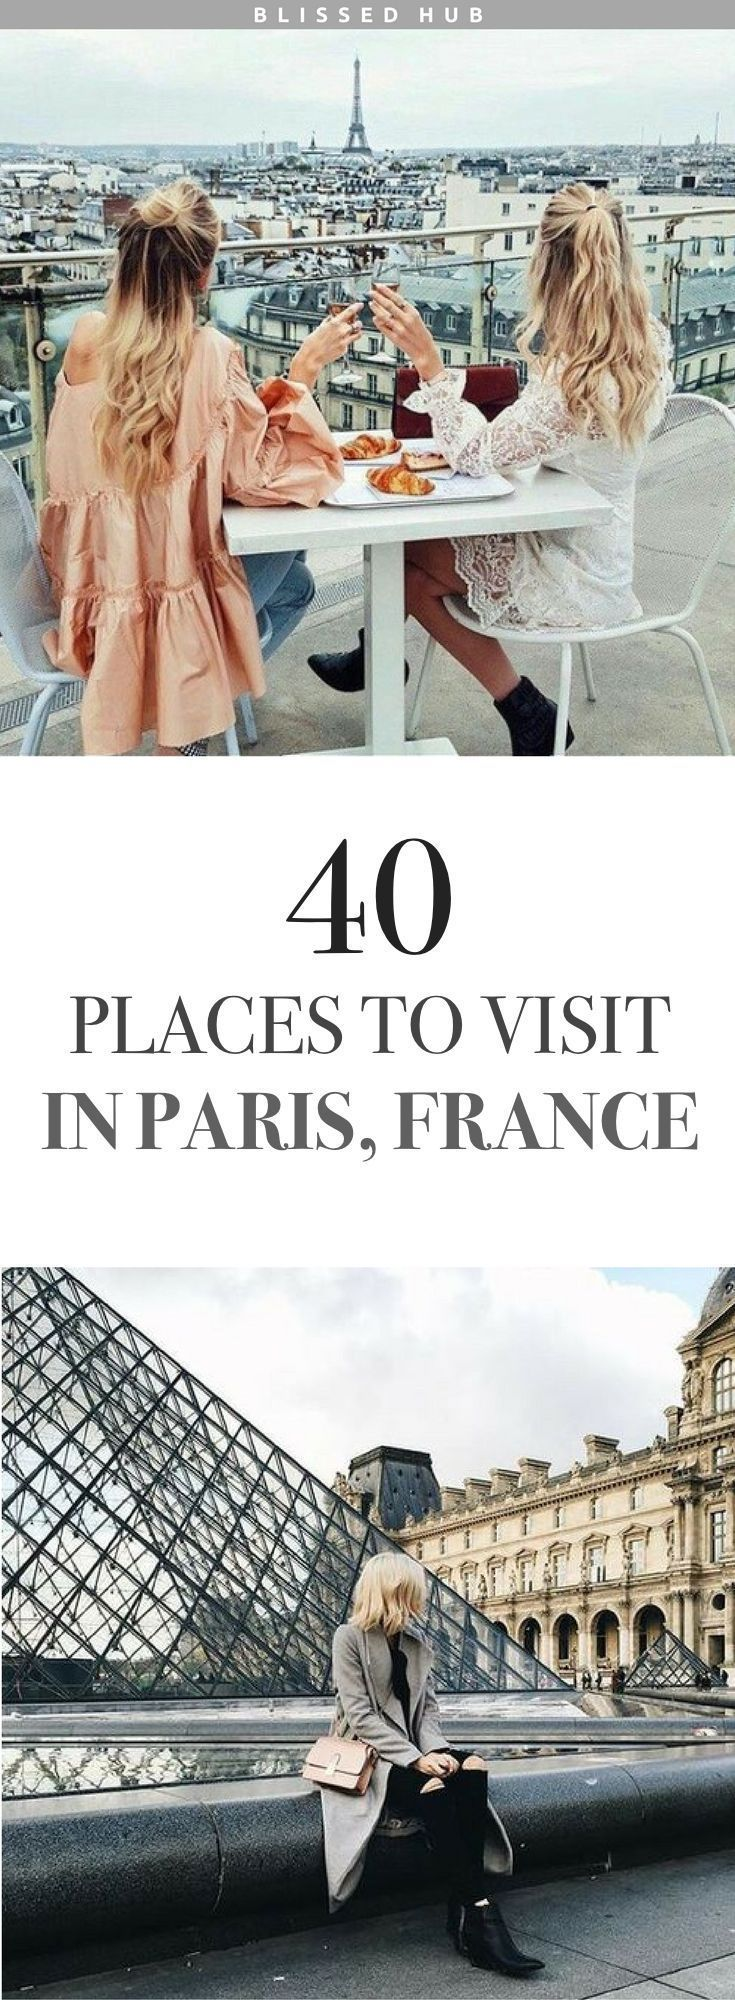 Map Of Paris And Attractions%0A    PLACES TO VIST IN PARIS FRANCE   paris  france  eiffel tower  the  lourve  vacation  holiday ideas  places to go   Paris is so much for than  the typical